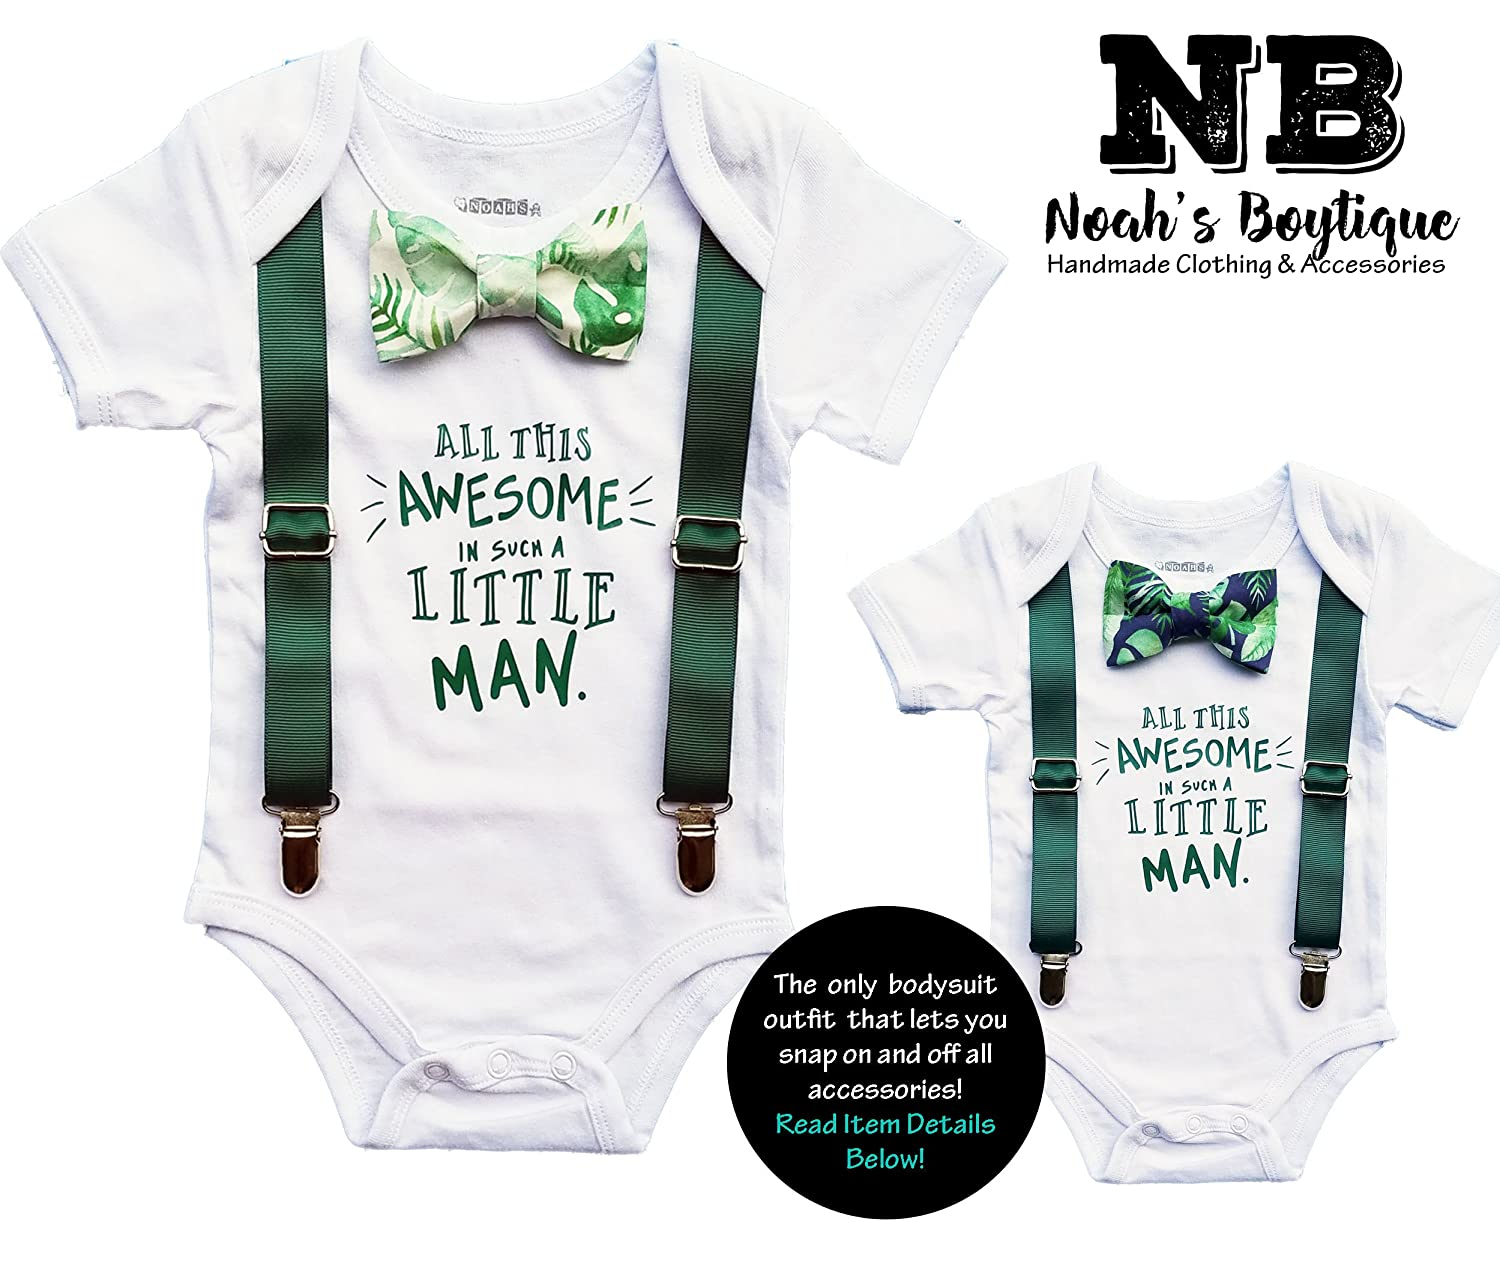 c1c246c1c83d Amazon.com  Noah s Boytique Baby Boy Summer Coming Home From The Hospital Outfit  Baby Gift  Clothing